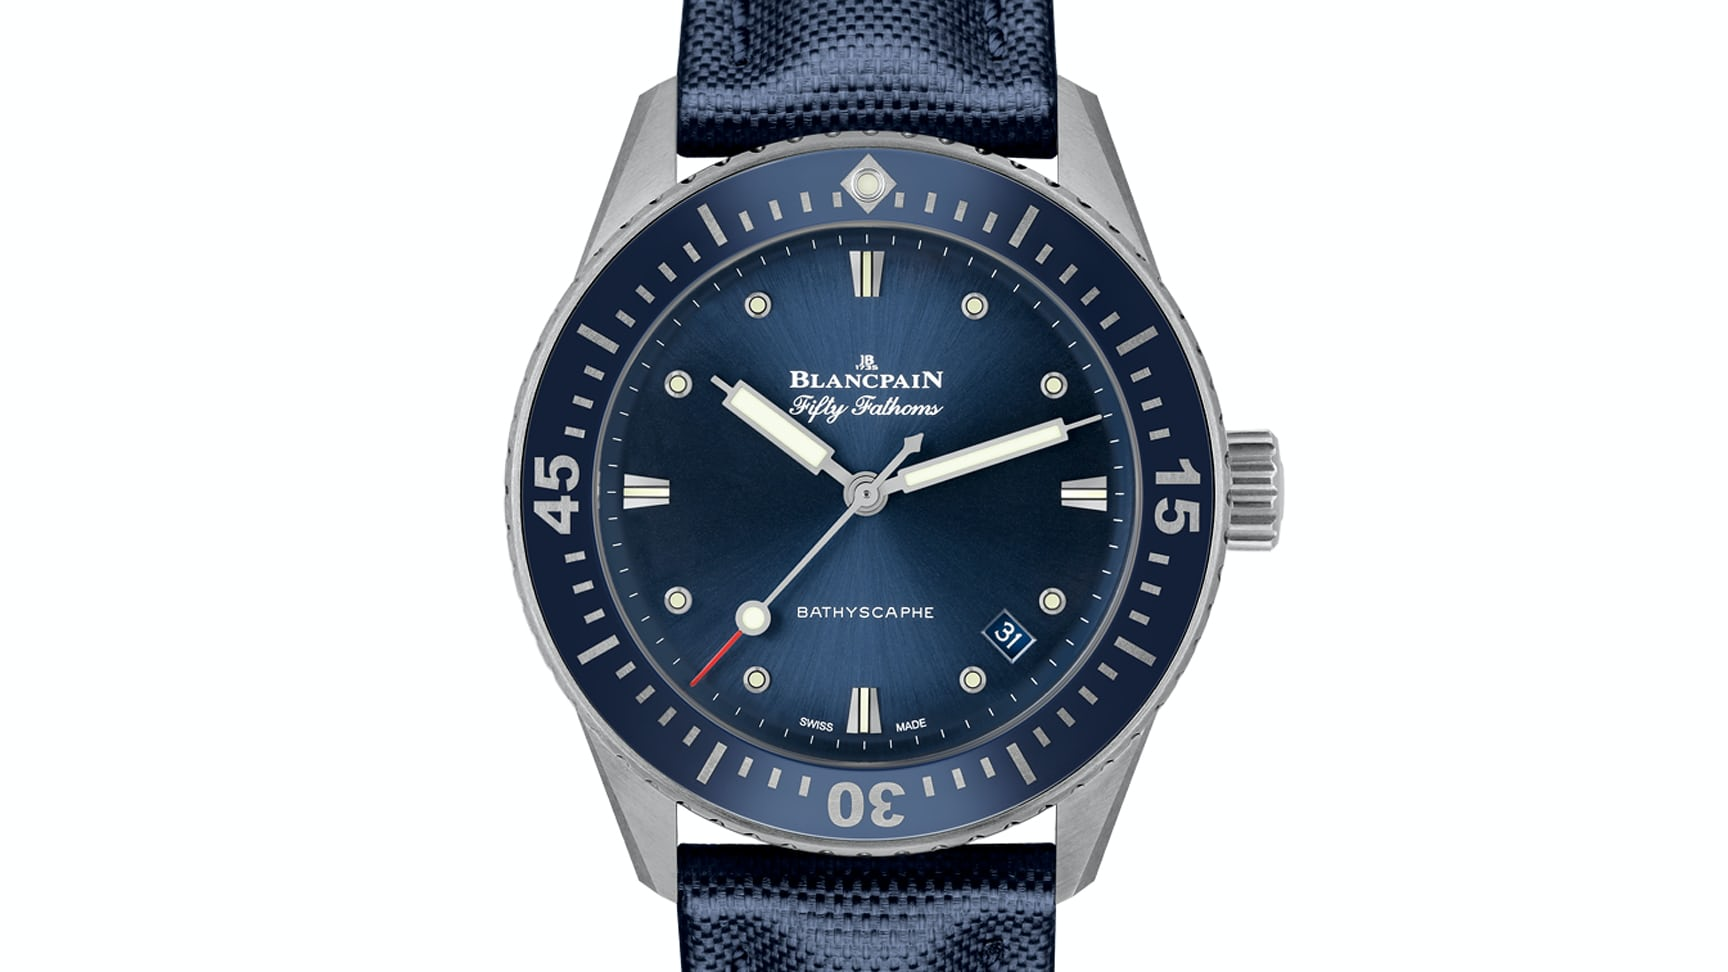 a19827f36d445 Introducing  The Blancpain Fifty Fathoms Bathyscaphe In 38mm - HODINKEE